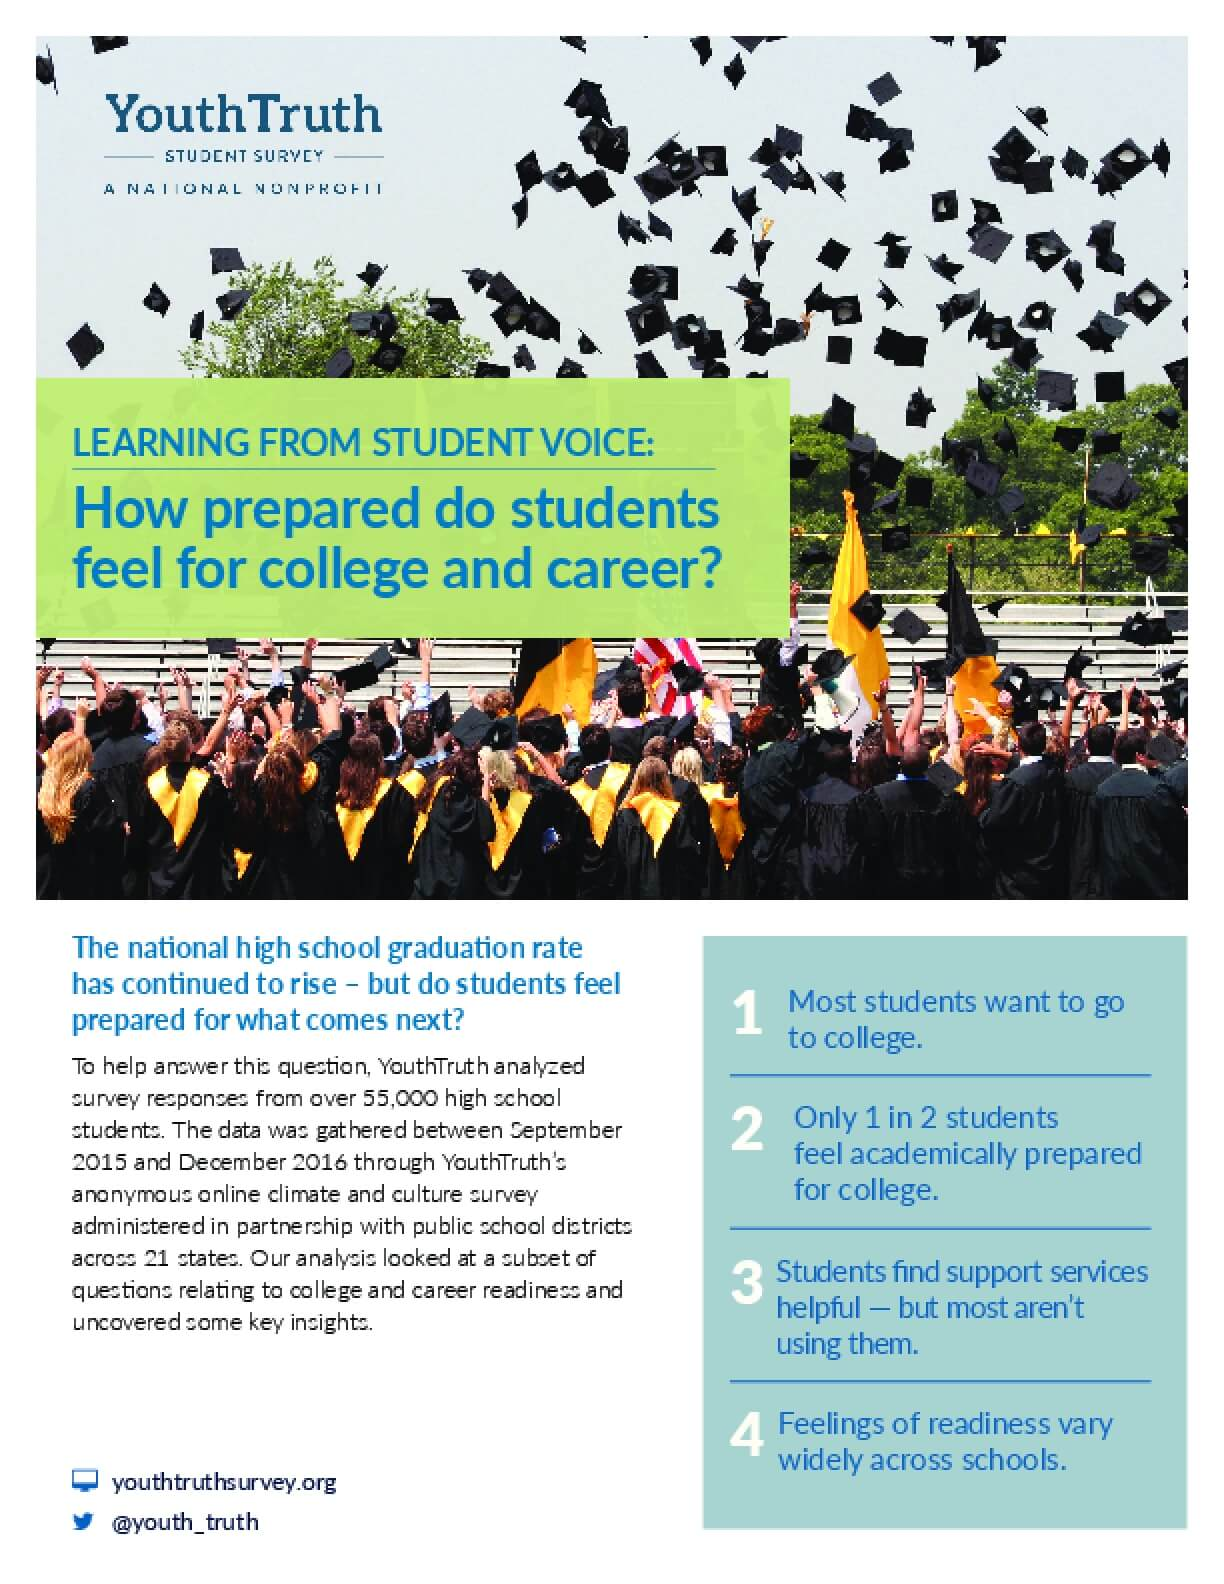 Learning From Student Voice: How Prepared Do Students Feel for College and Career?